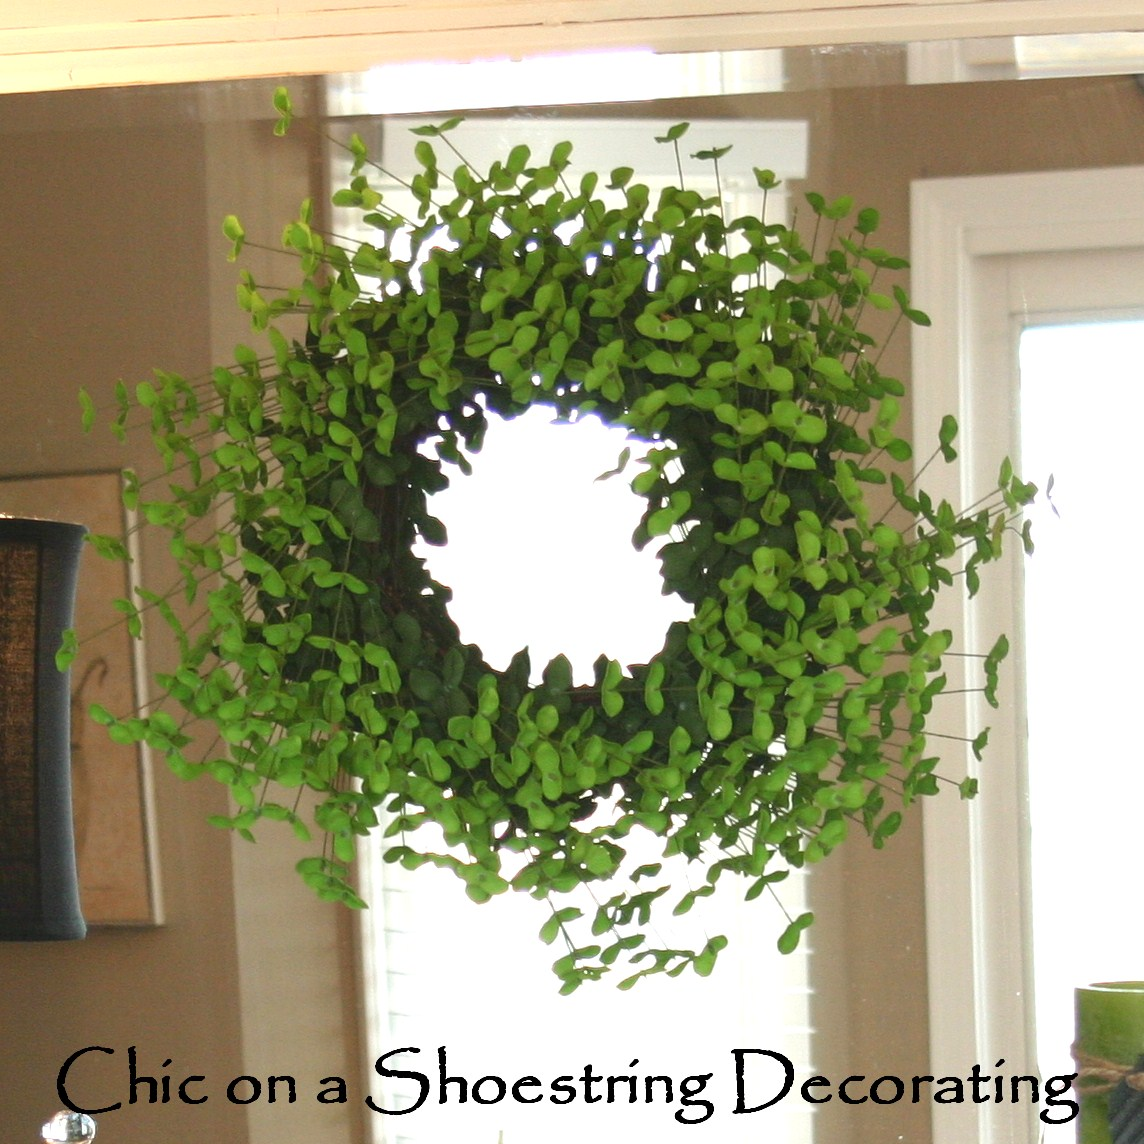 Chic on a shoestring decorating st patrick 39 s day decor for St patricks day home decorations